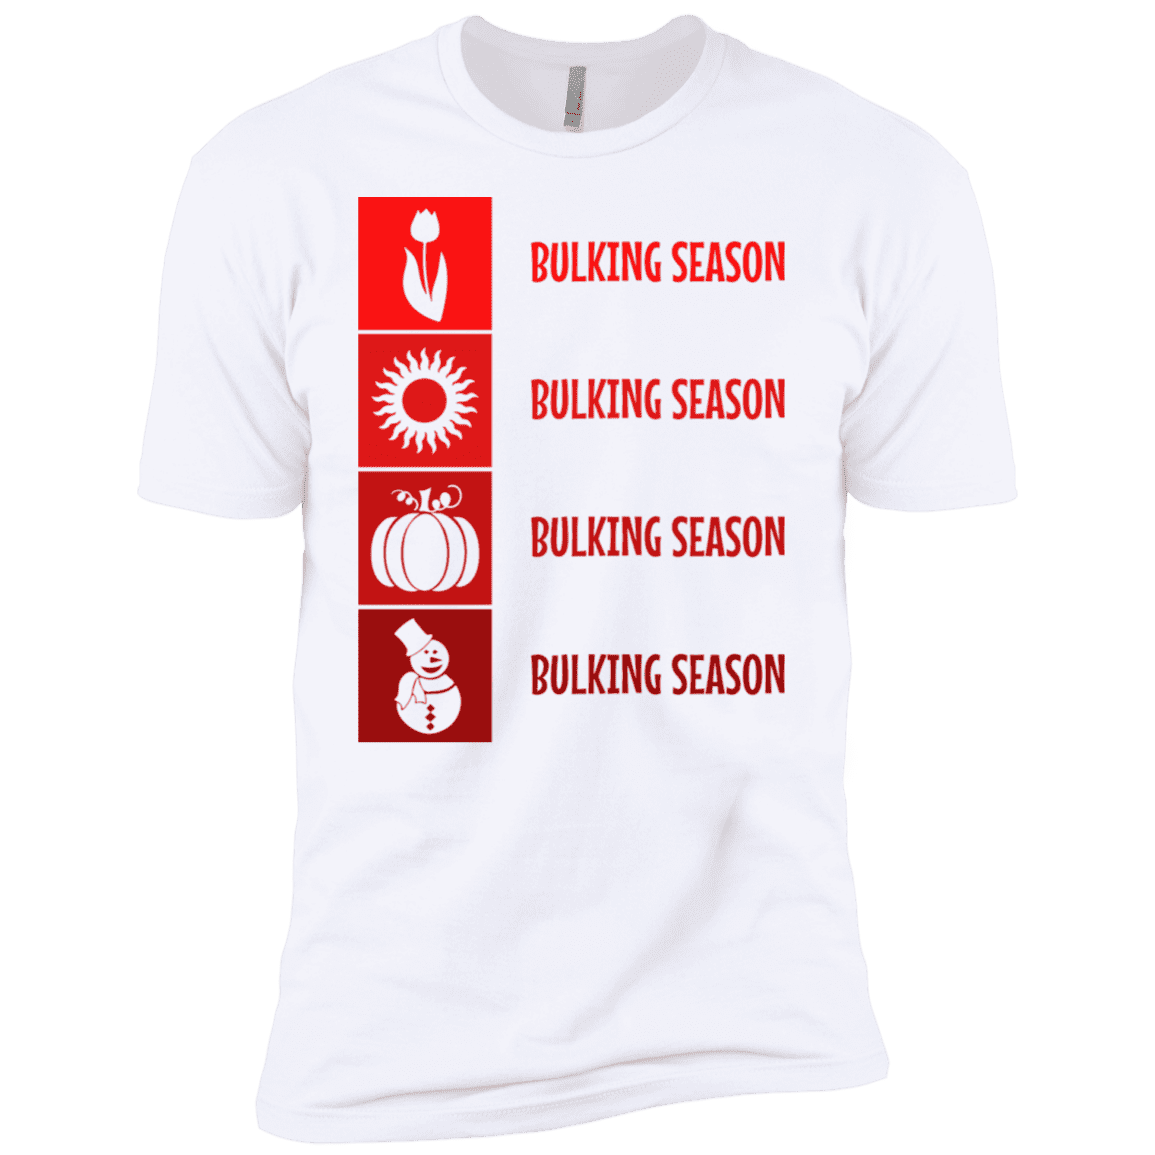 T-Shirts White / X-Small Bulking Season XC Tee